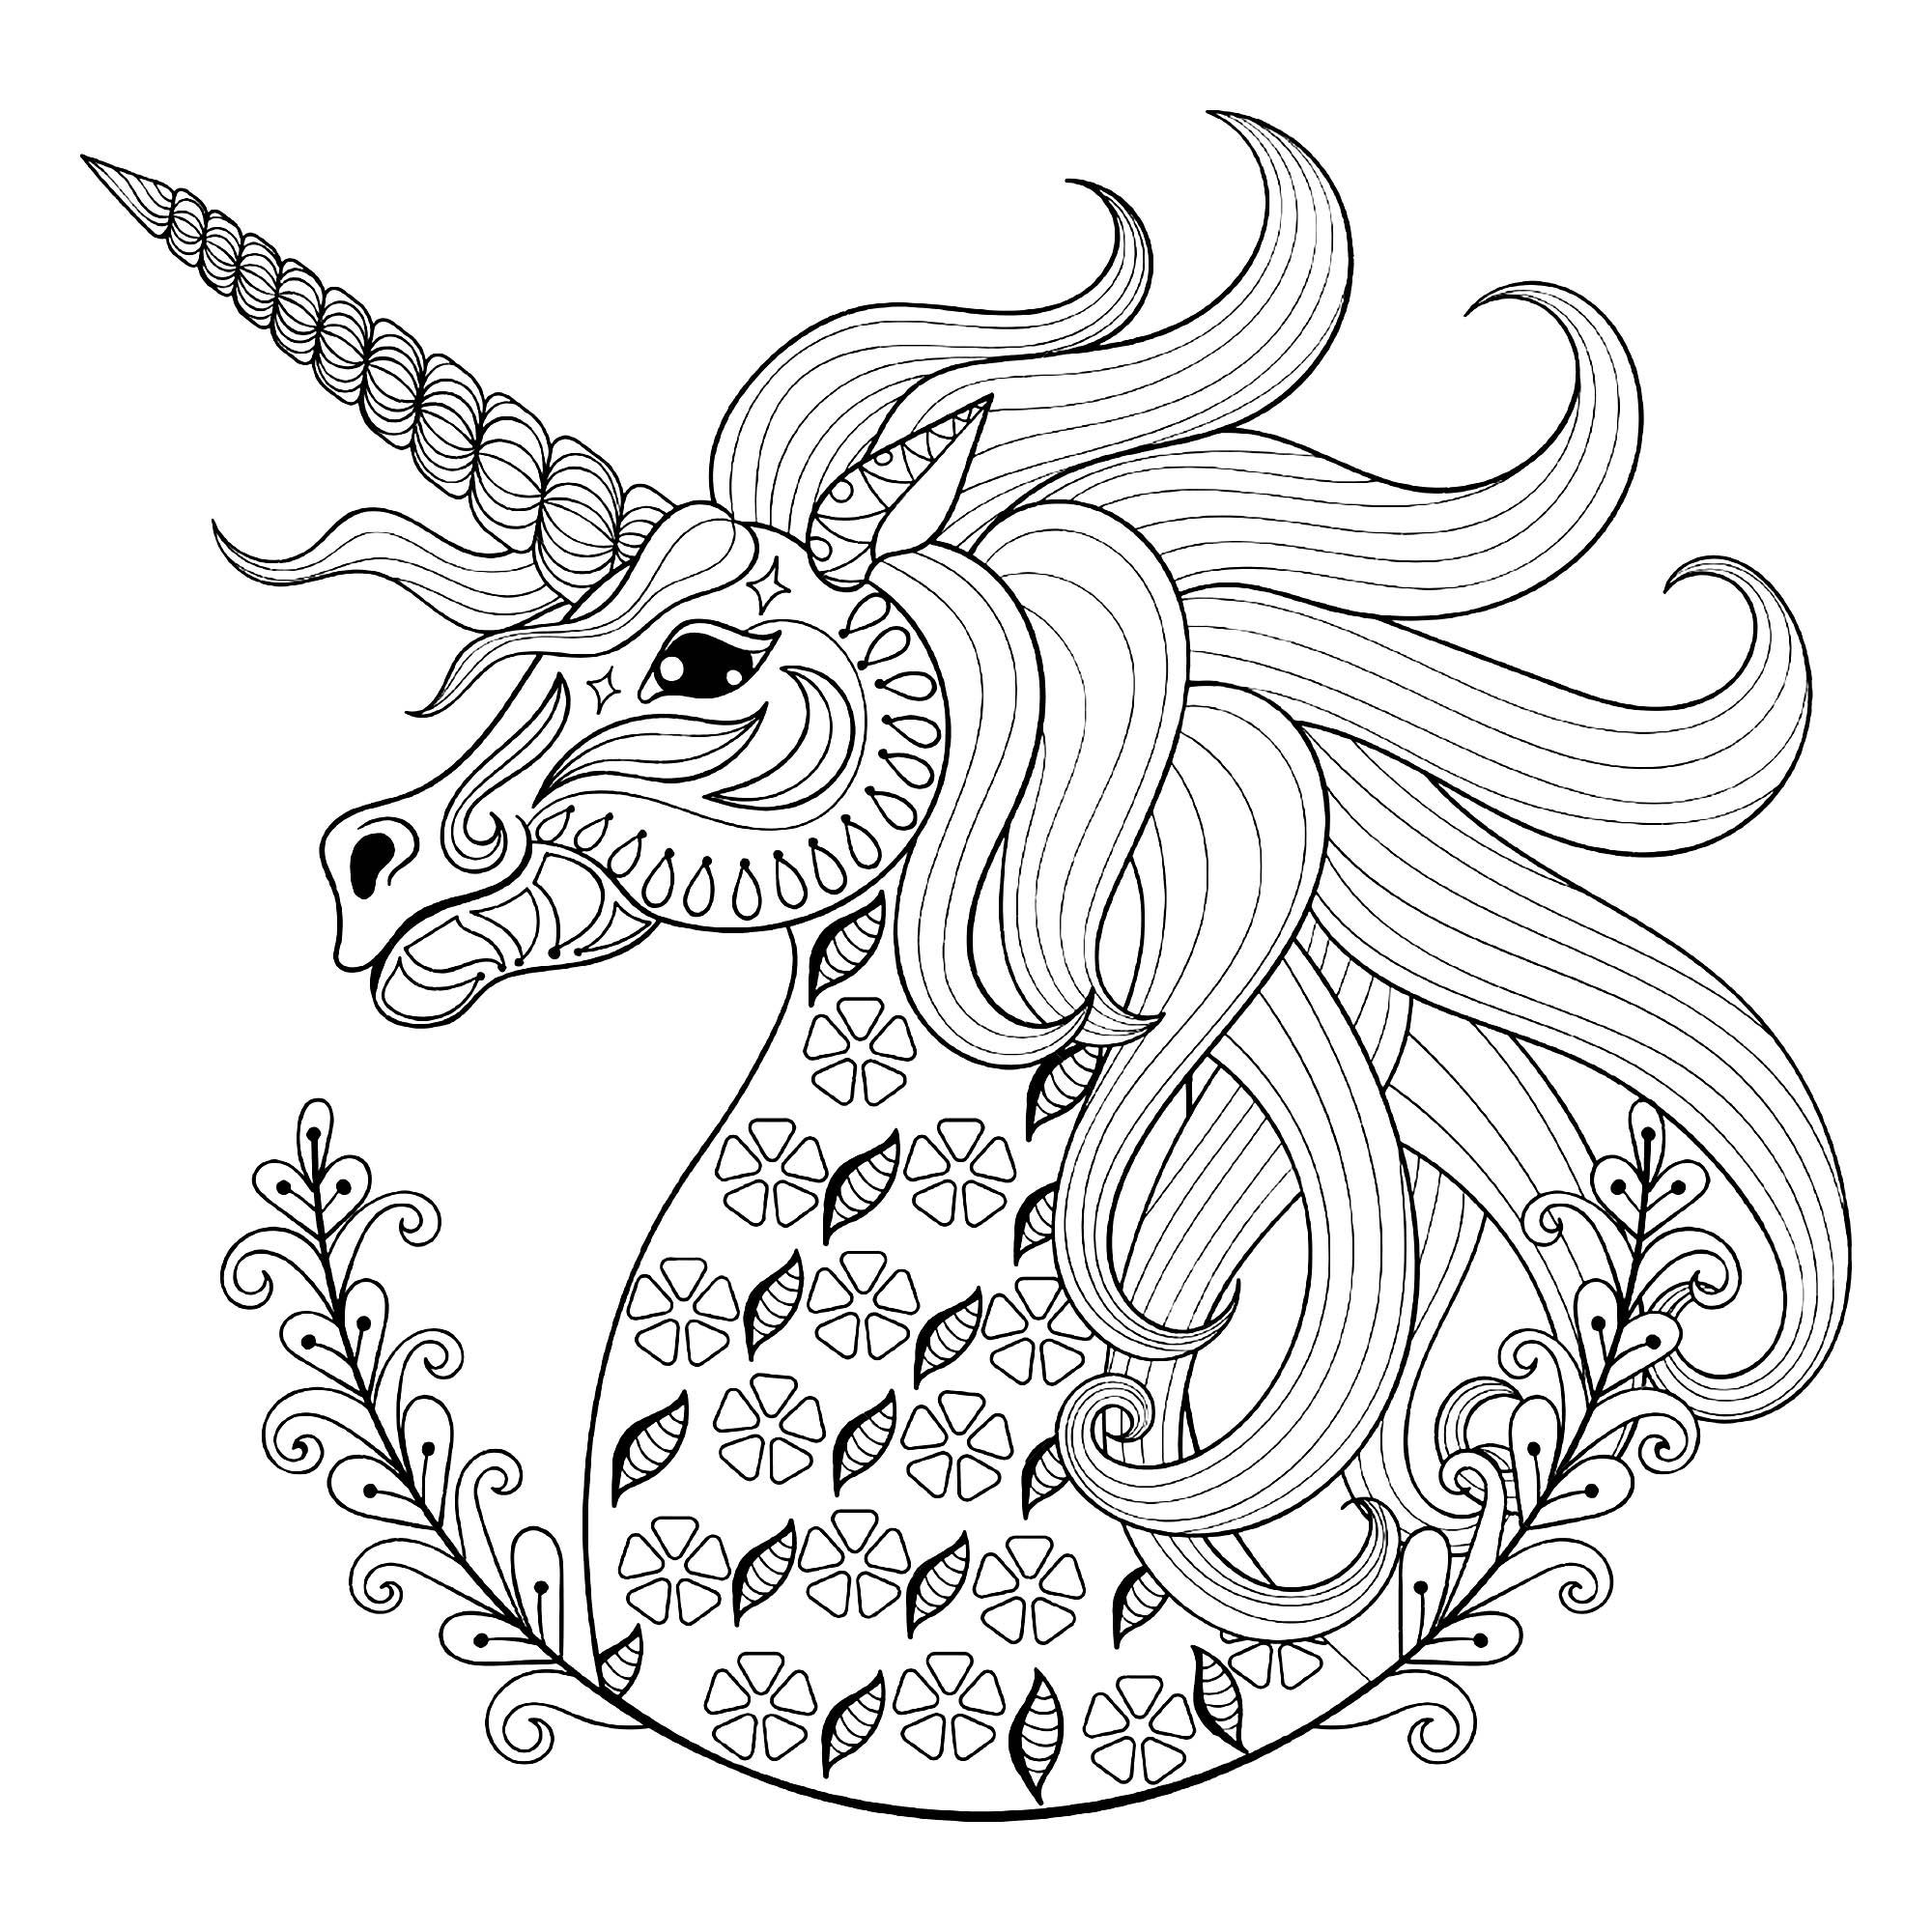 coloring pictures of unicorn unicorn coloring pages free download on clipartmag pictures coloring unicorn of